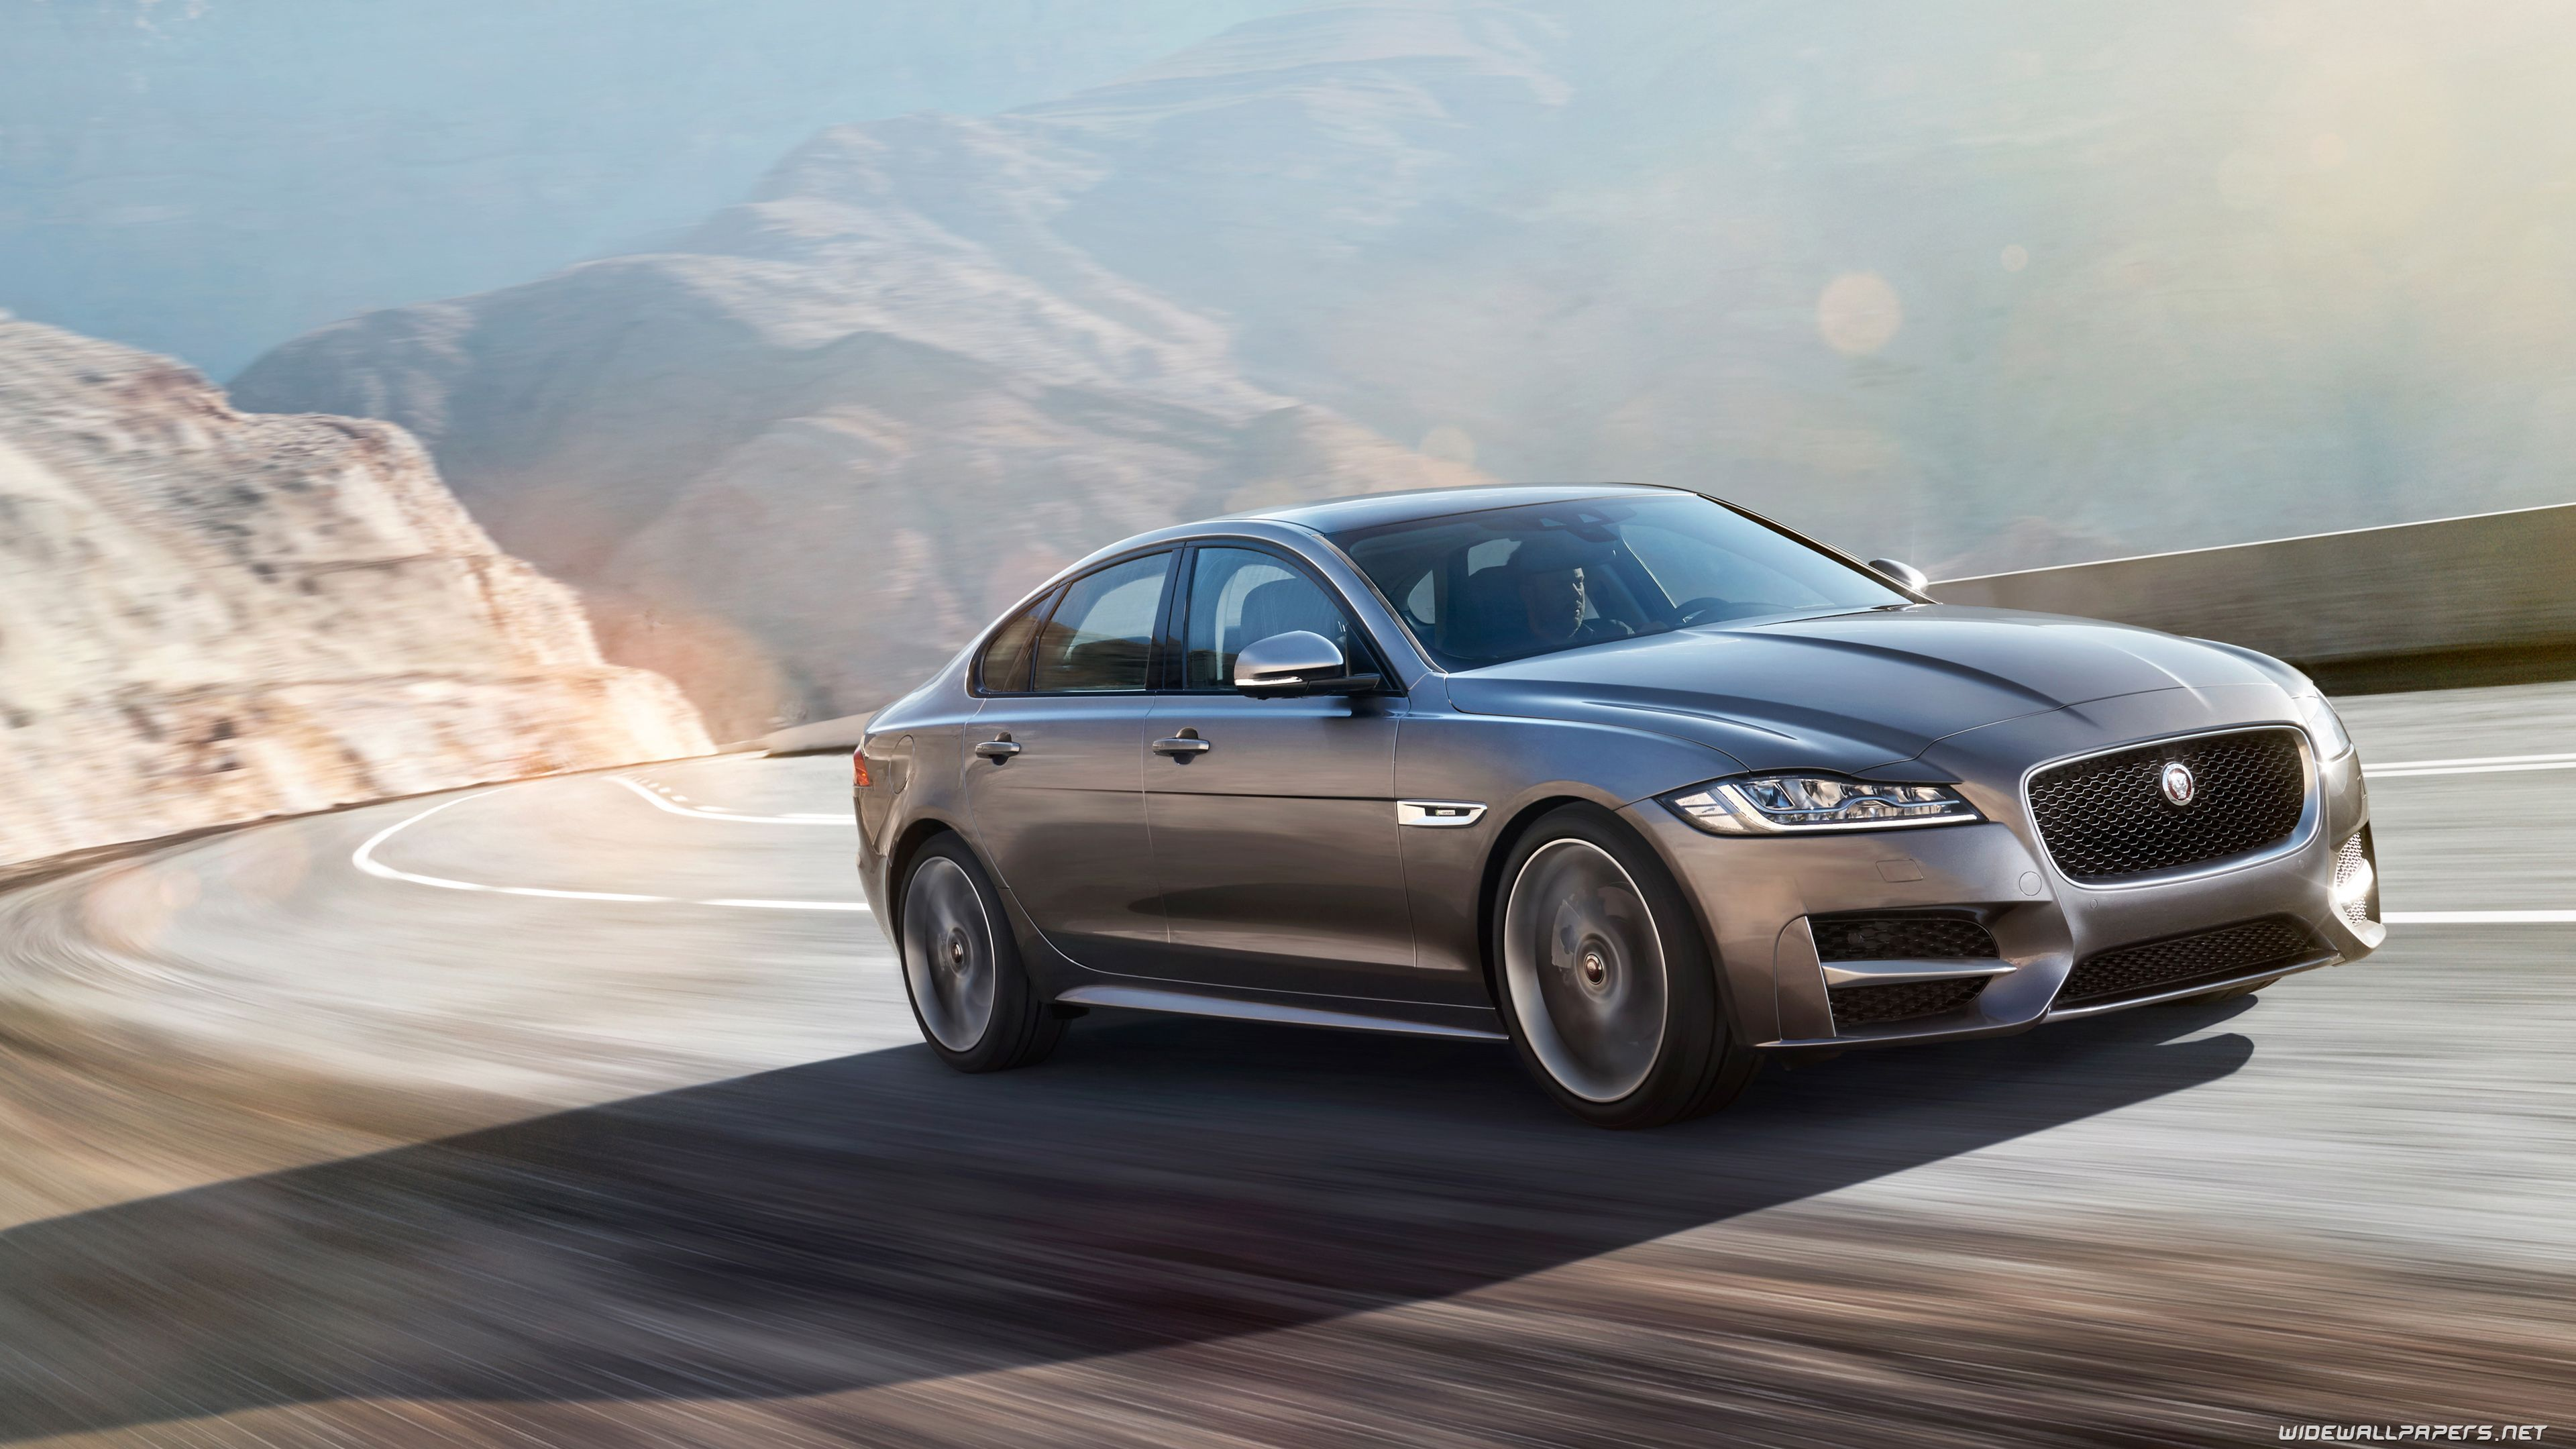 goes new news autoevolution on all avant rendered in united britain s the states sale from sportbrake jaguar xf for british awd